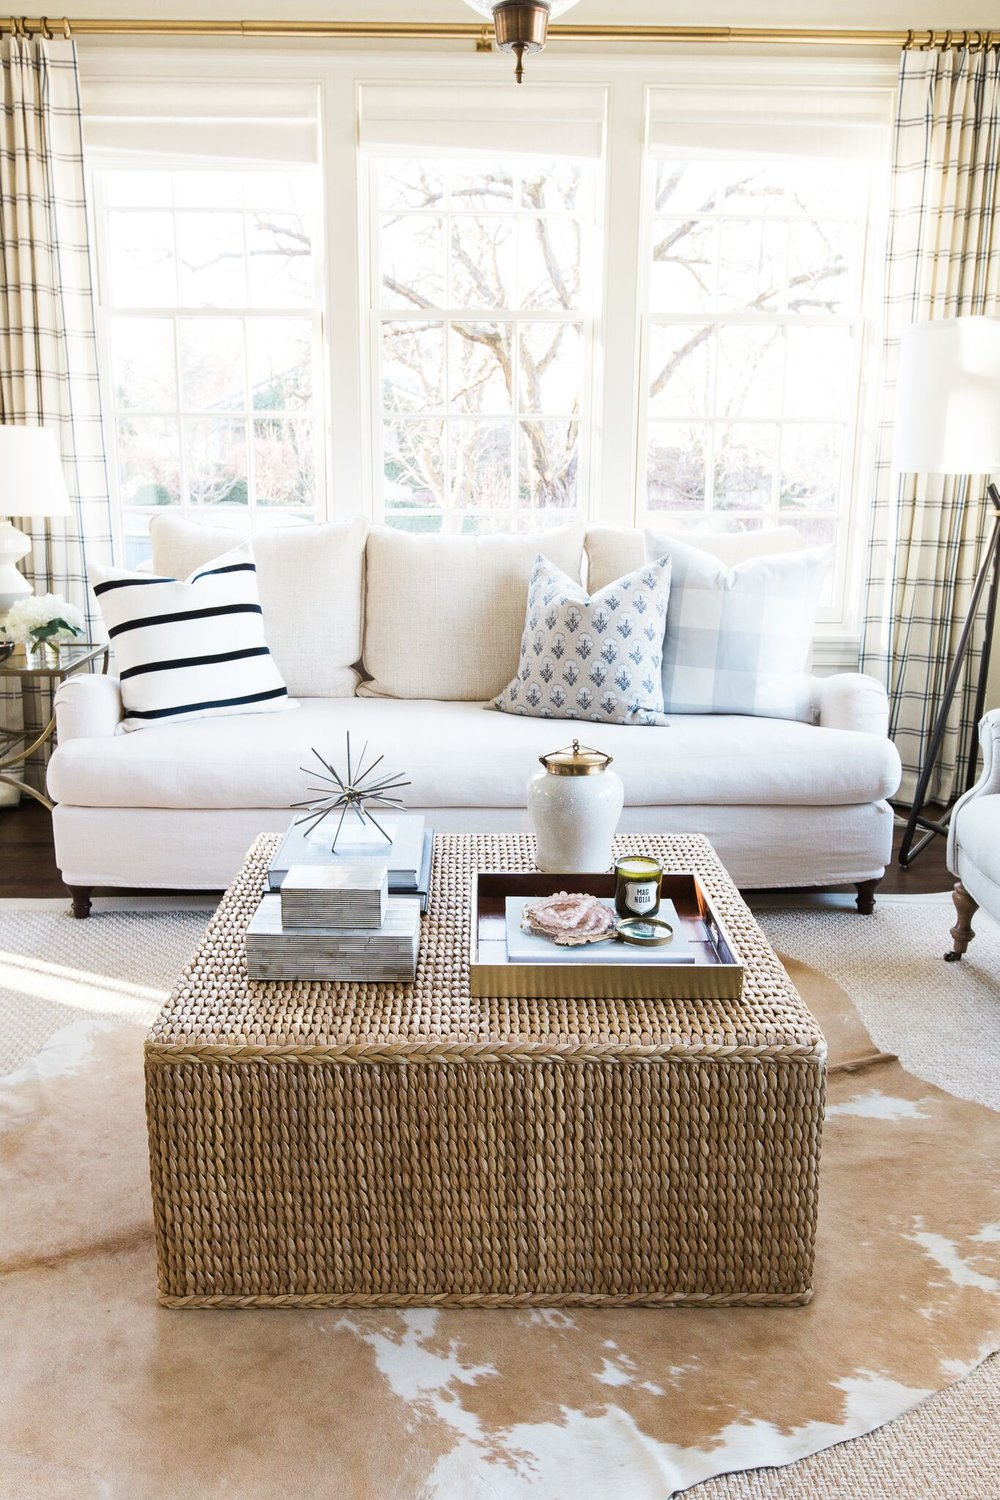 Large white sofa with decorative pillows